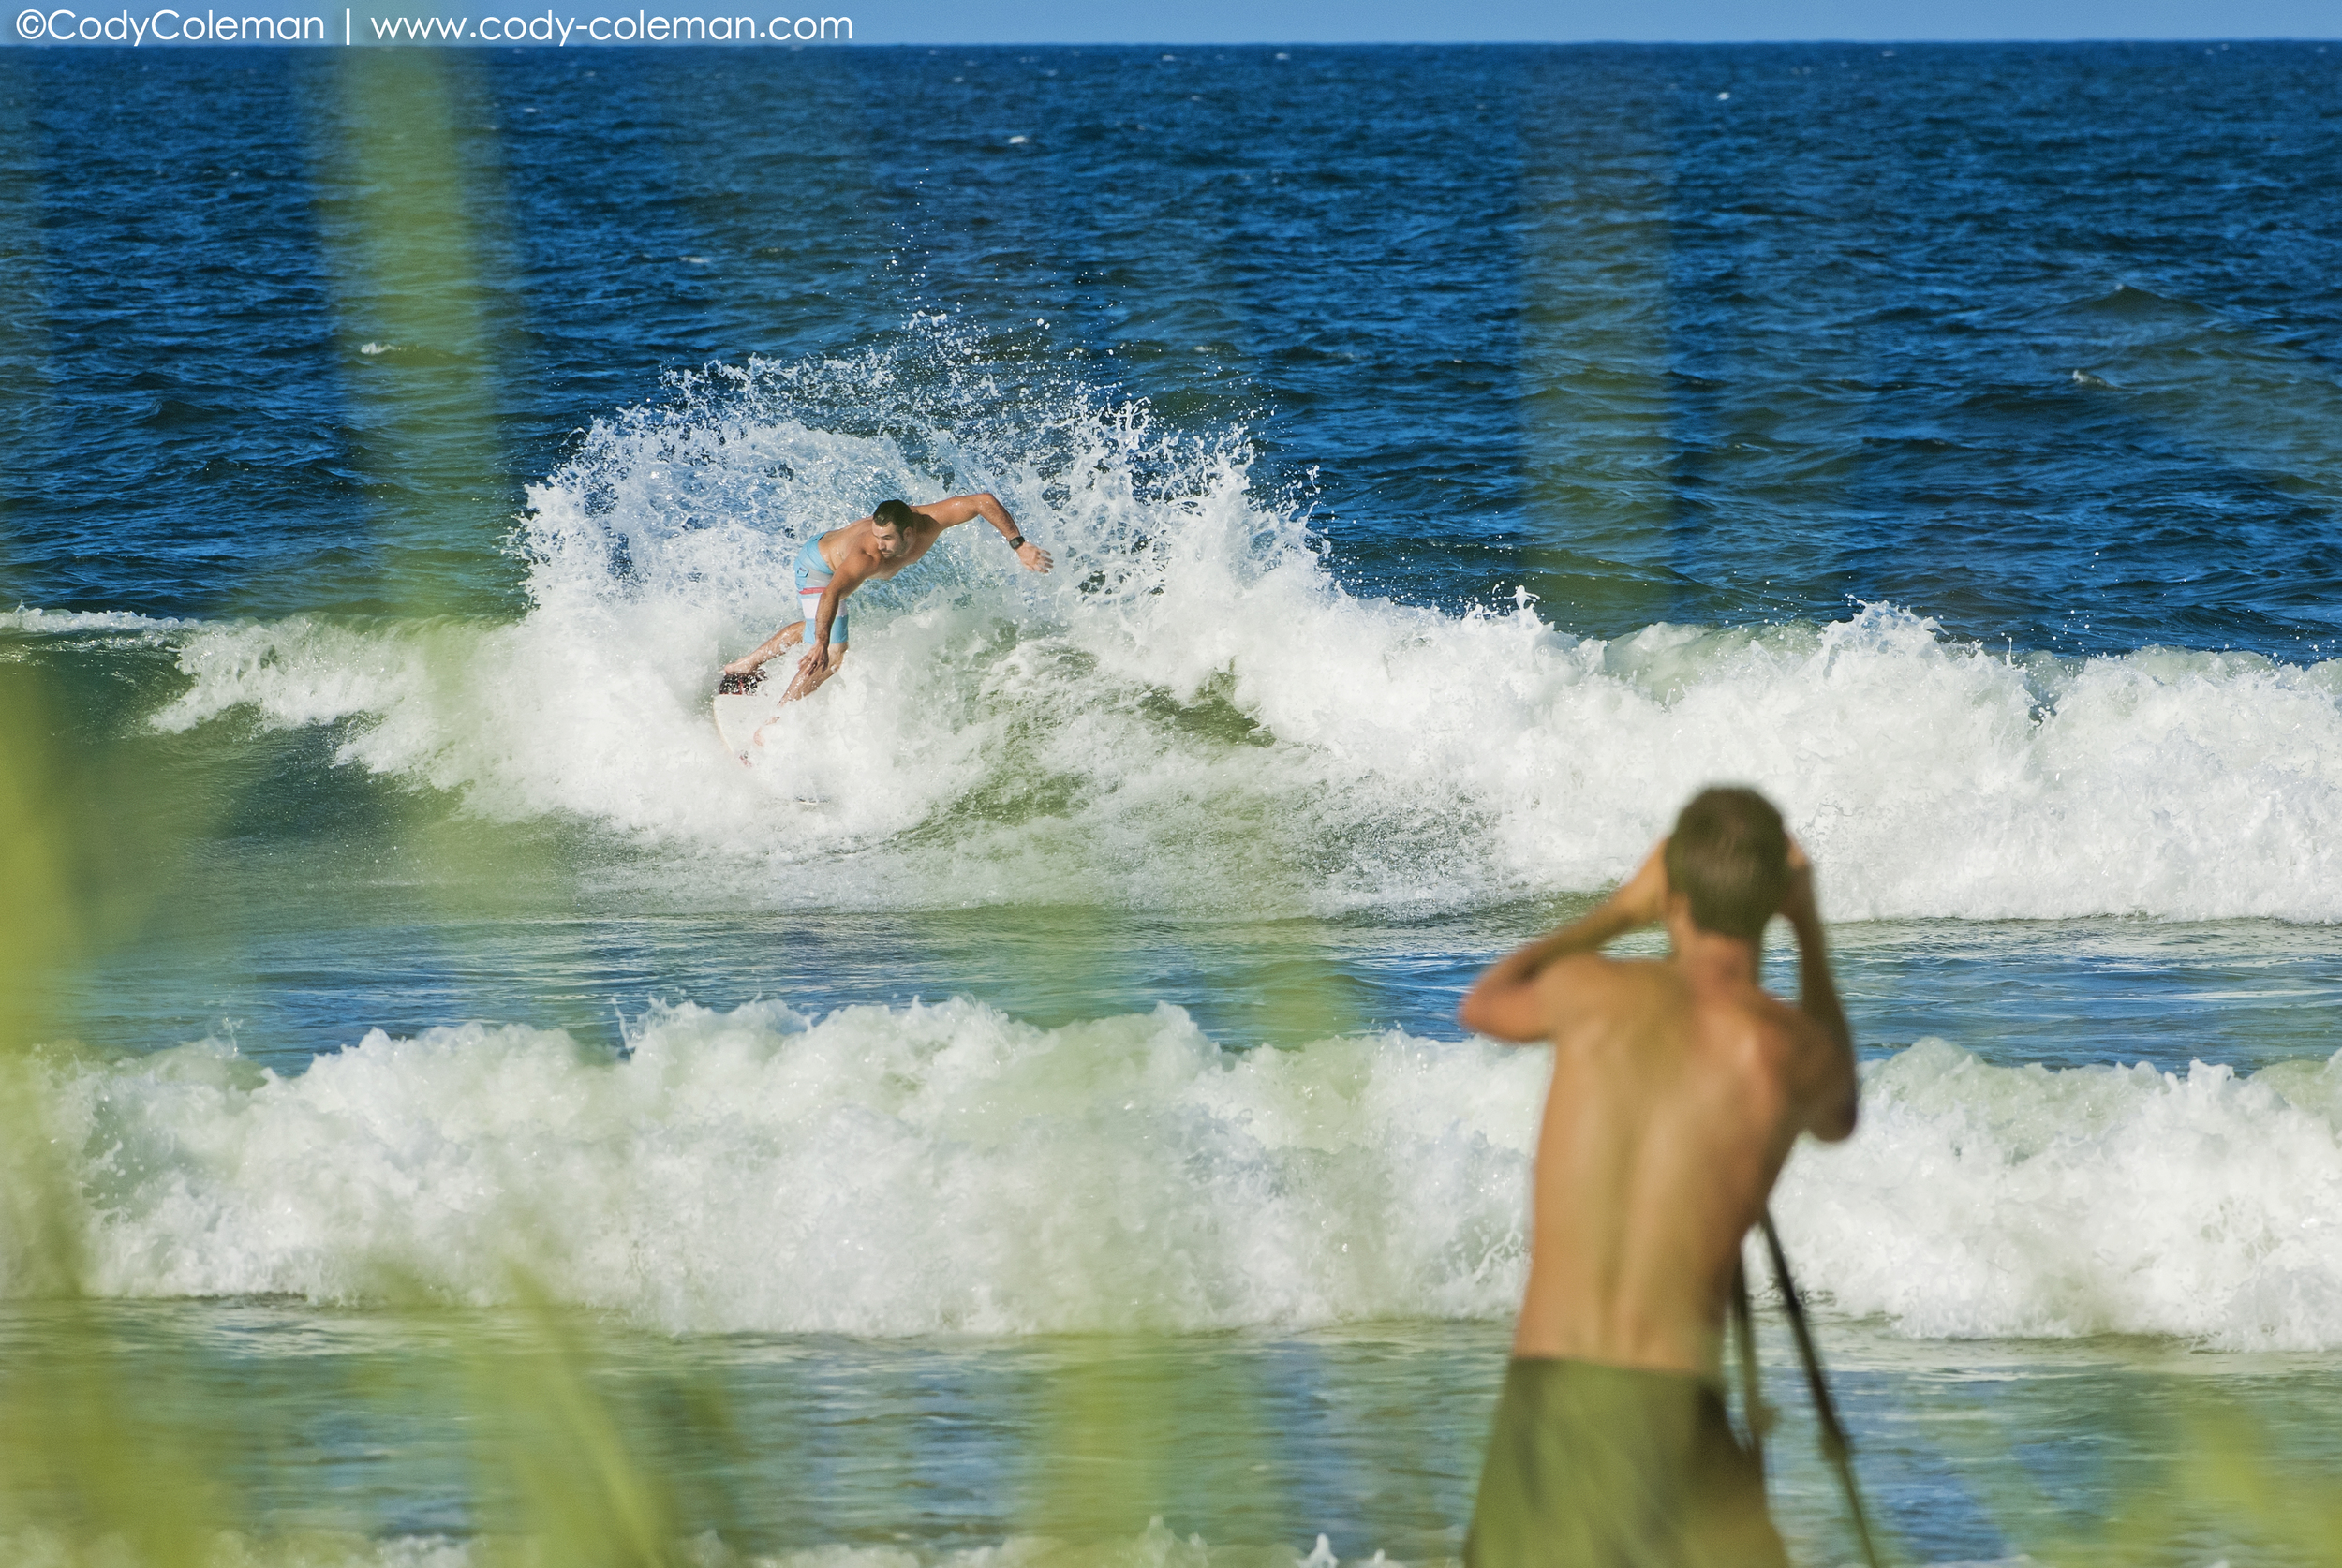 Stoked on this shot of Beener filming Matt Wetmore from from behind the dunes.